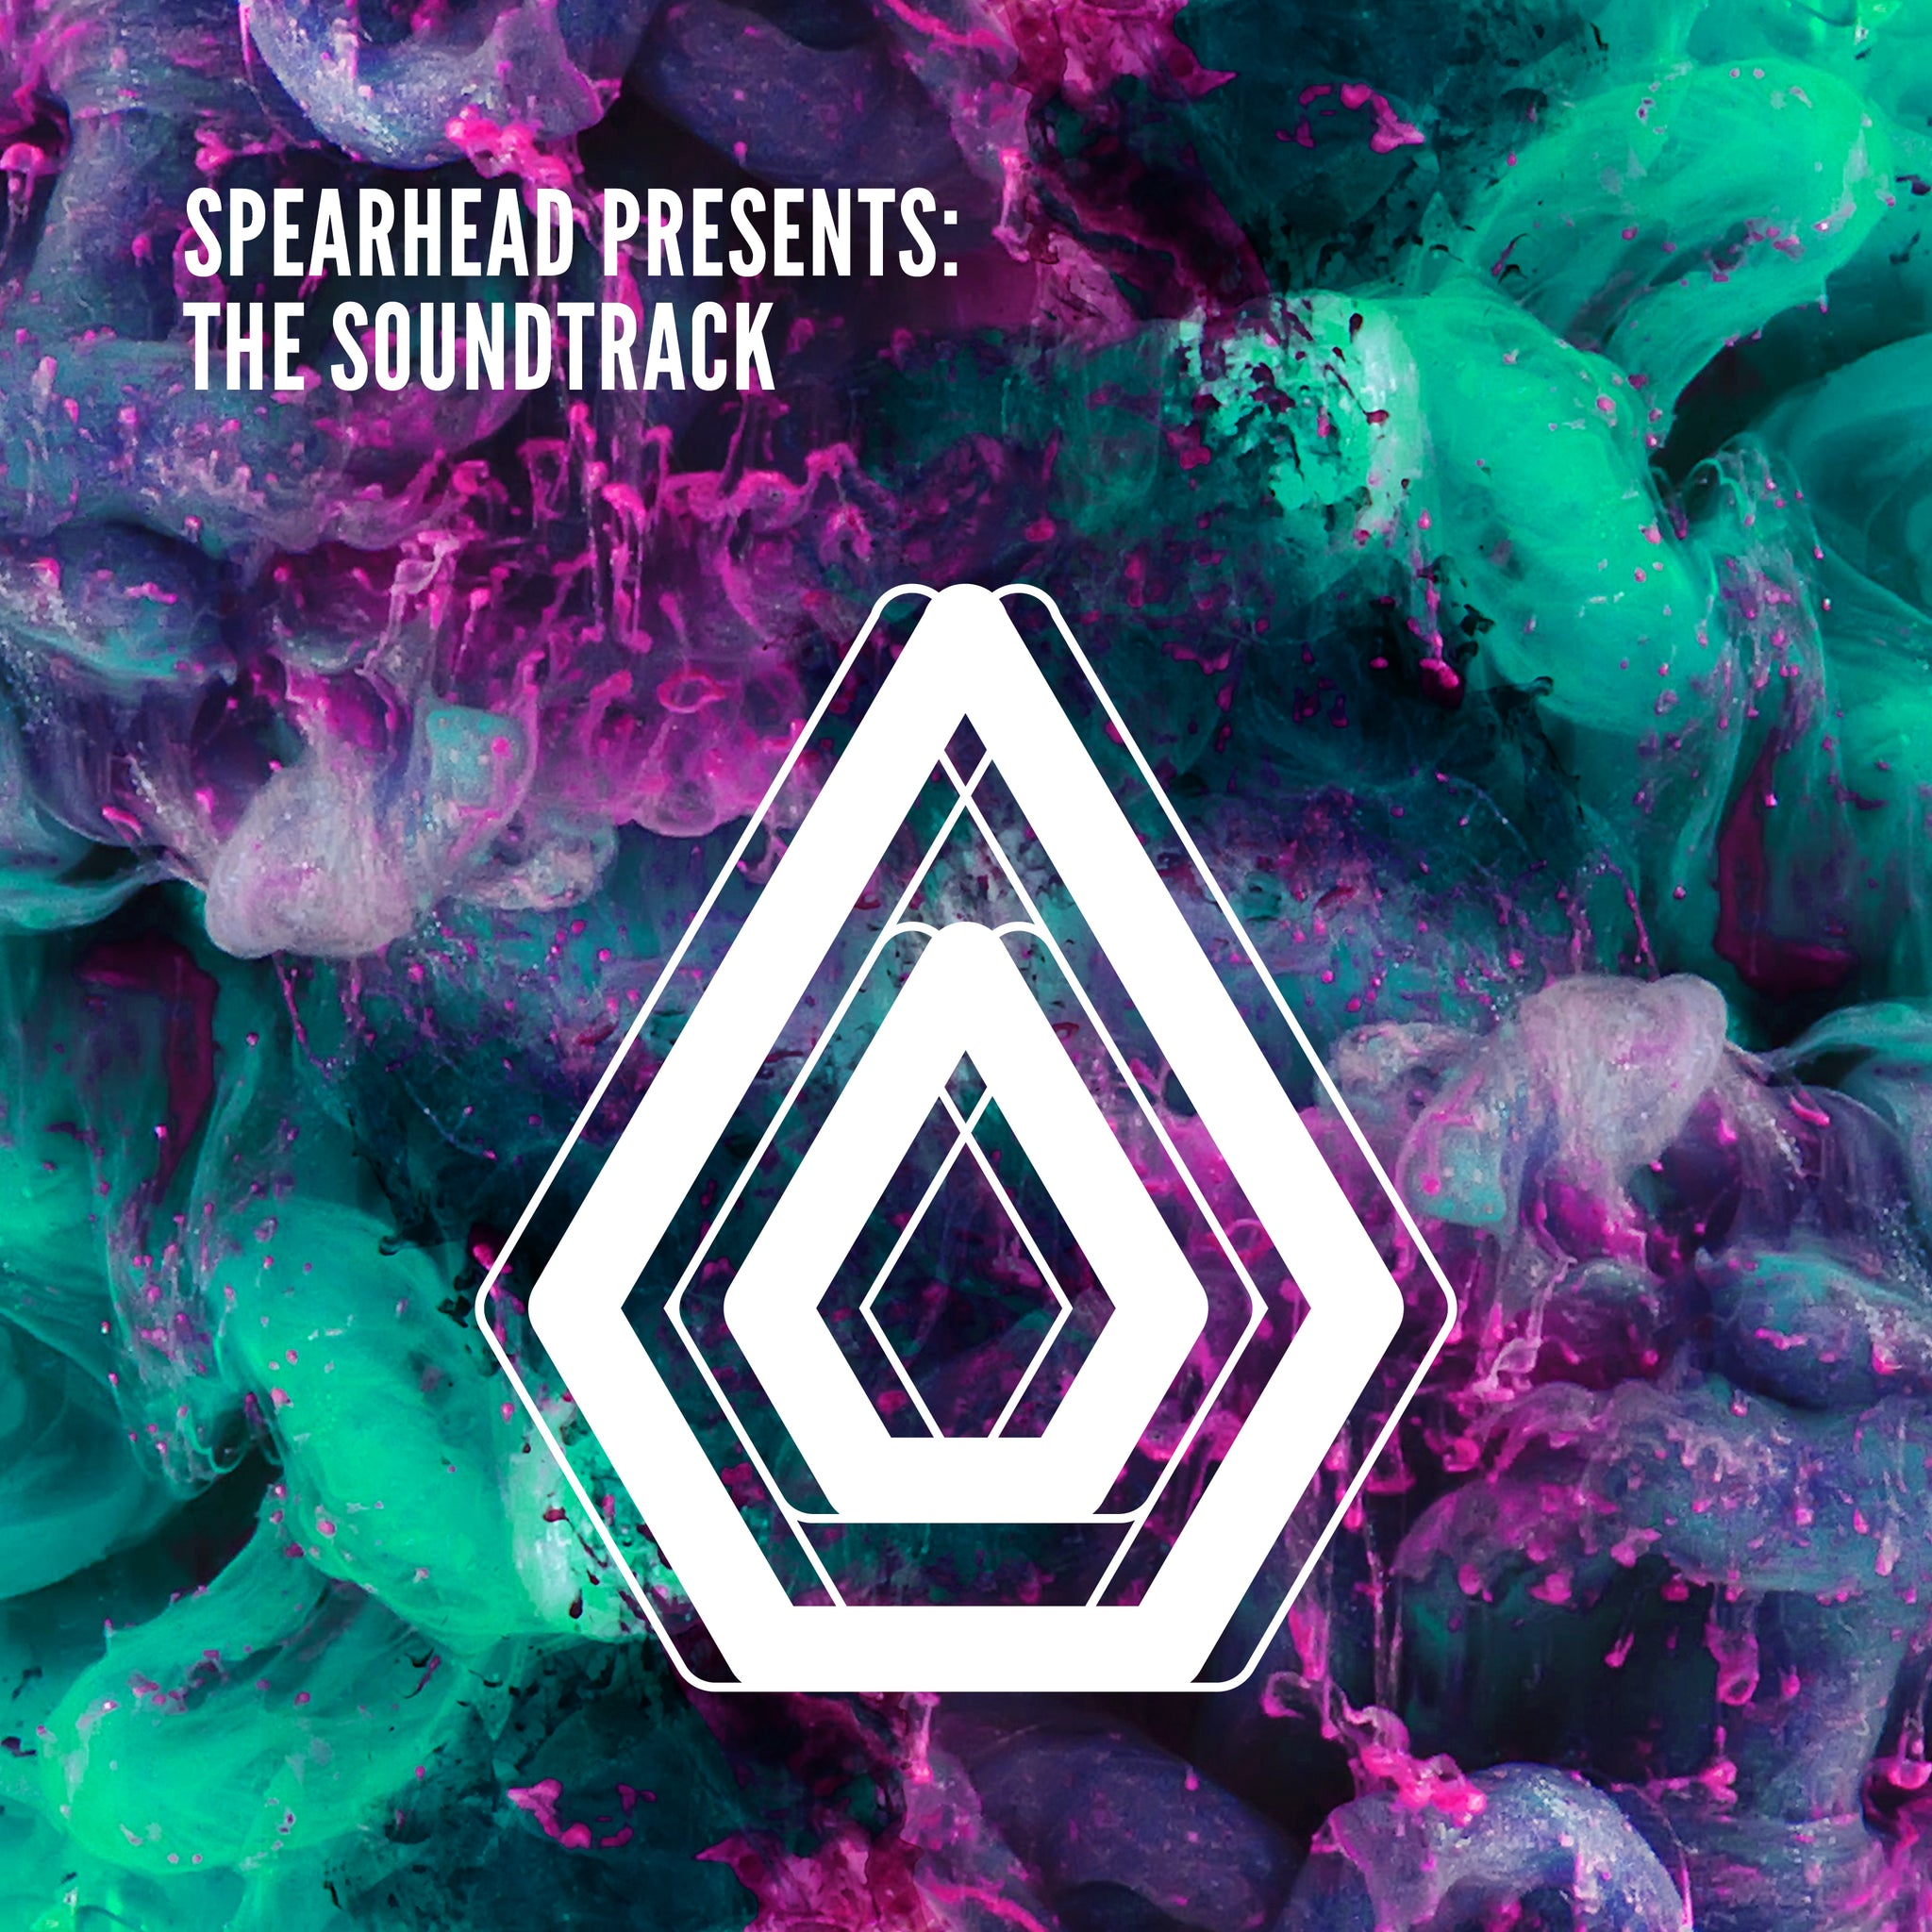 SPEAR080 - Spearhead Presents: The Soundtrack - CD & Download